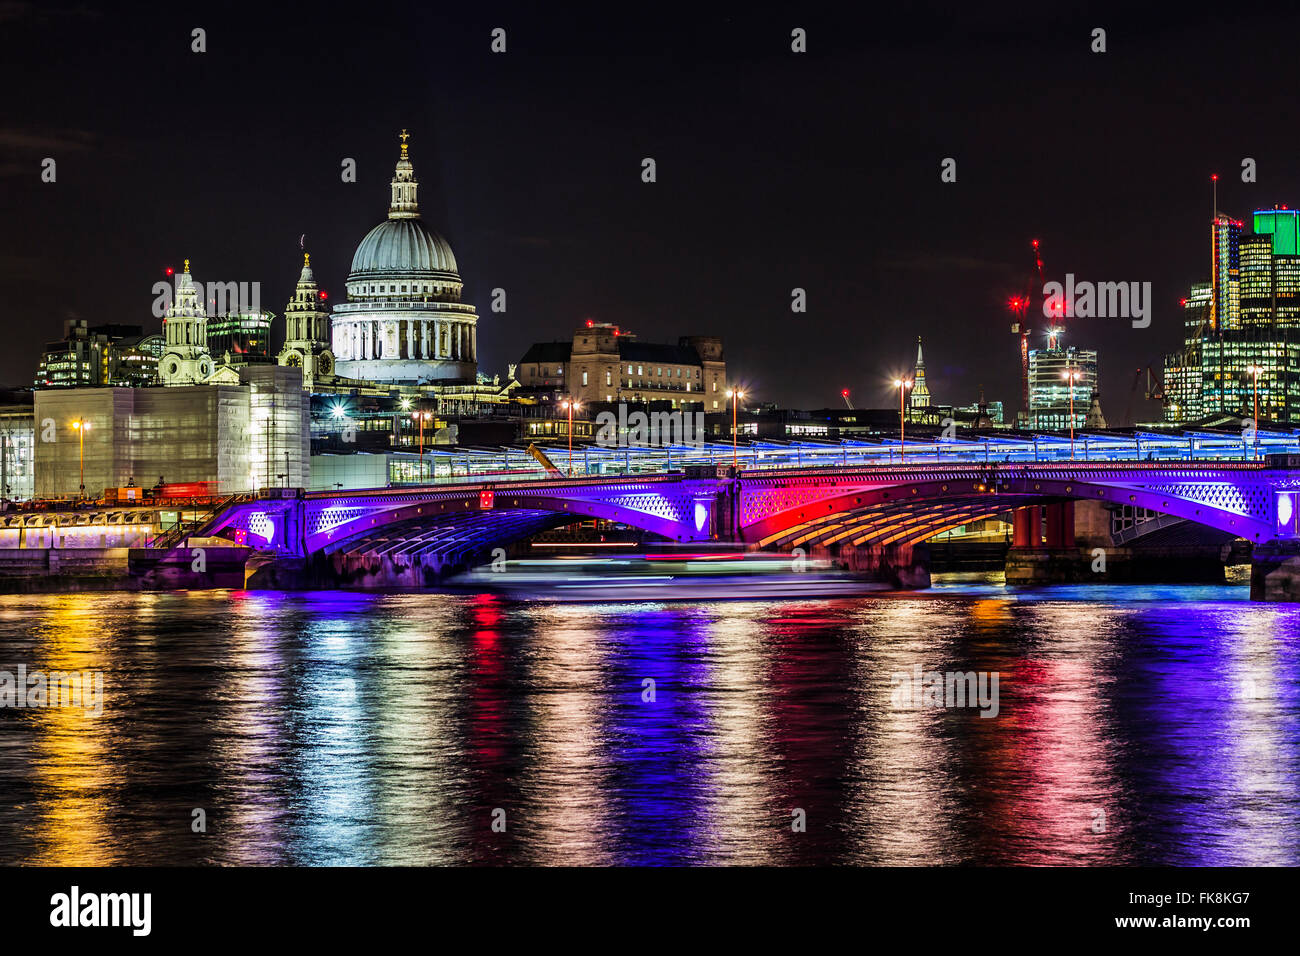 St Paul's cathedral by night - Stock Image